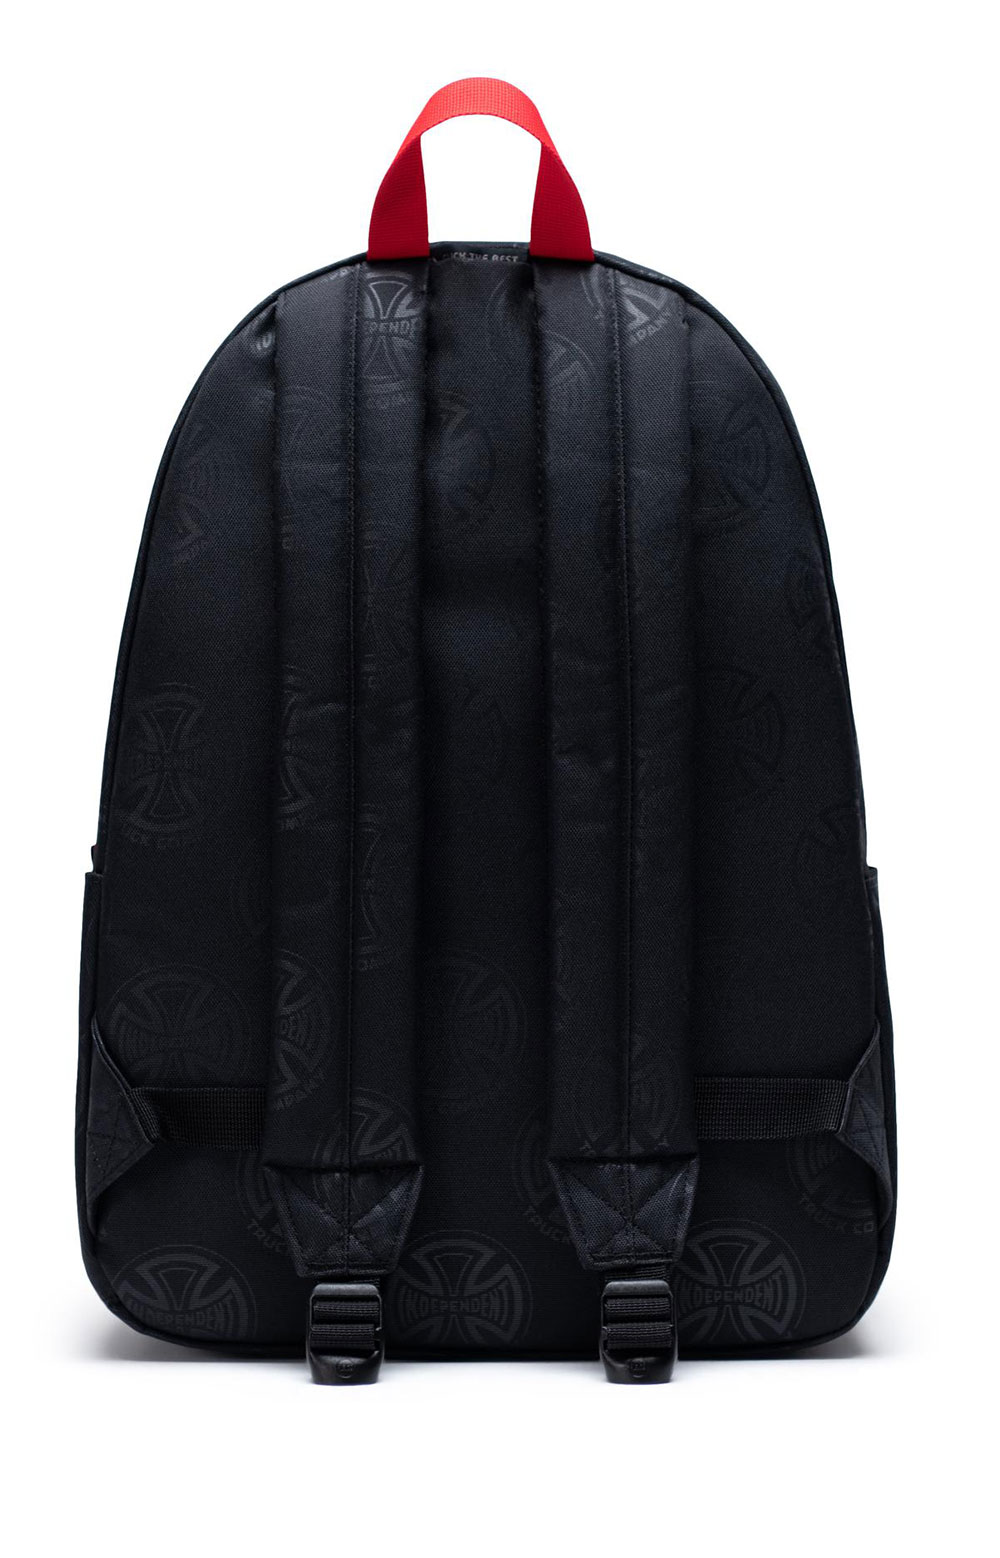 Classic XL Backpack - Independent Multi Cross Black 3